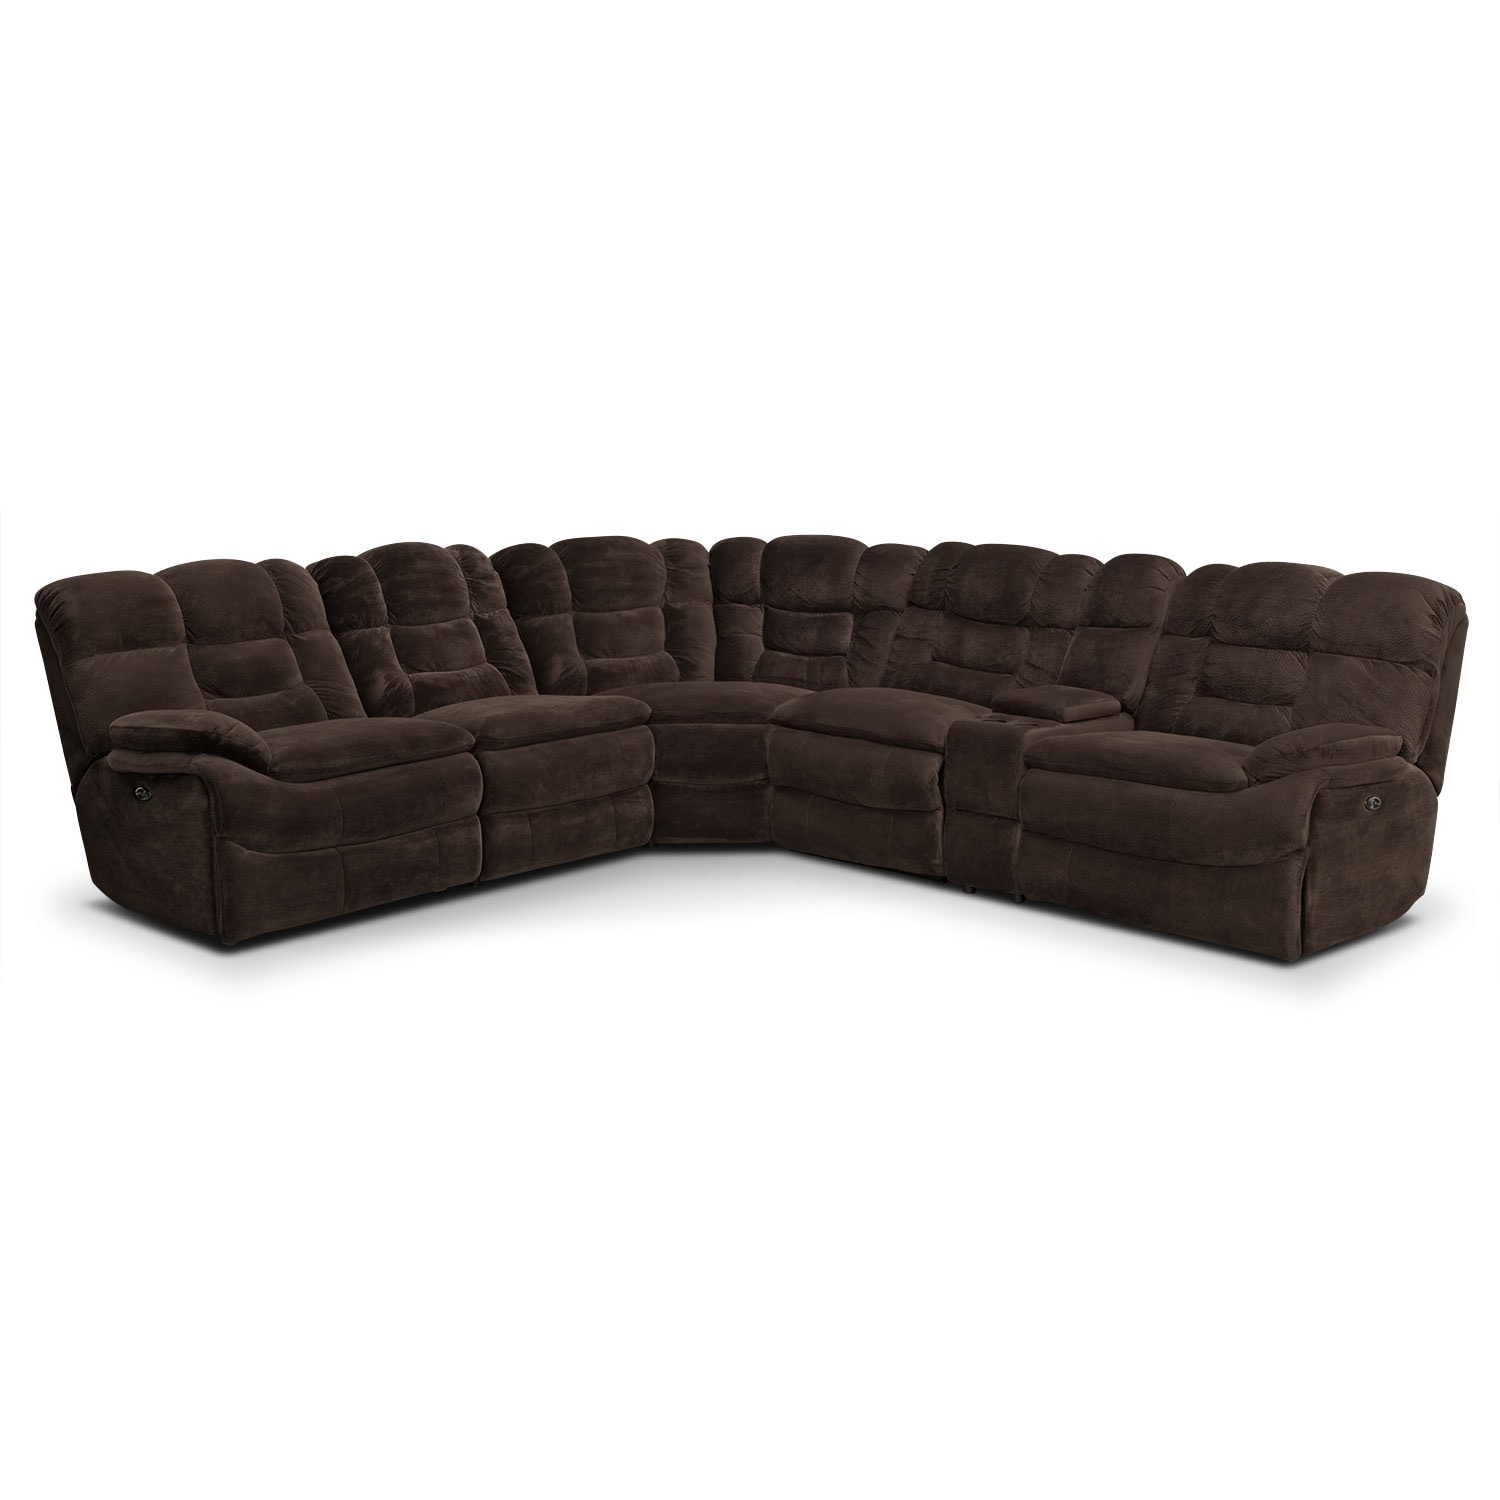 Big Softie 6-Piece Power Reclining Sectional - Chocolate